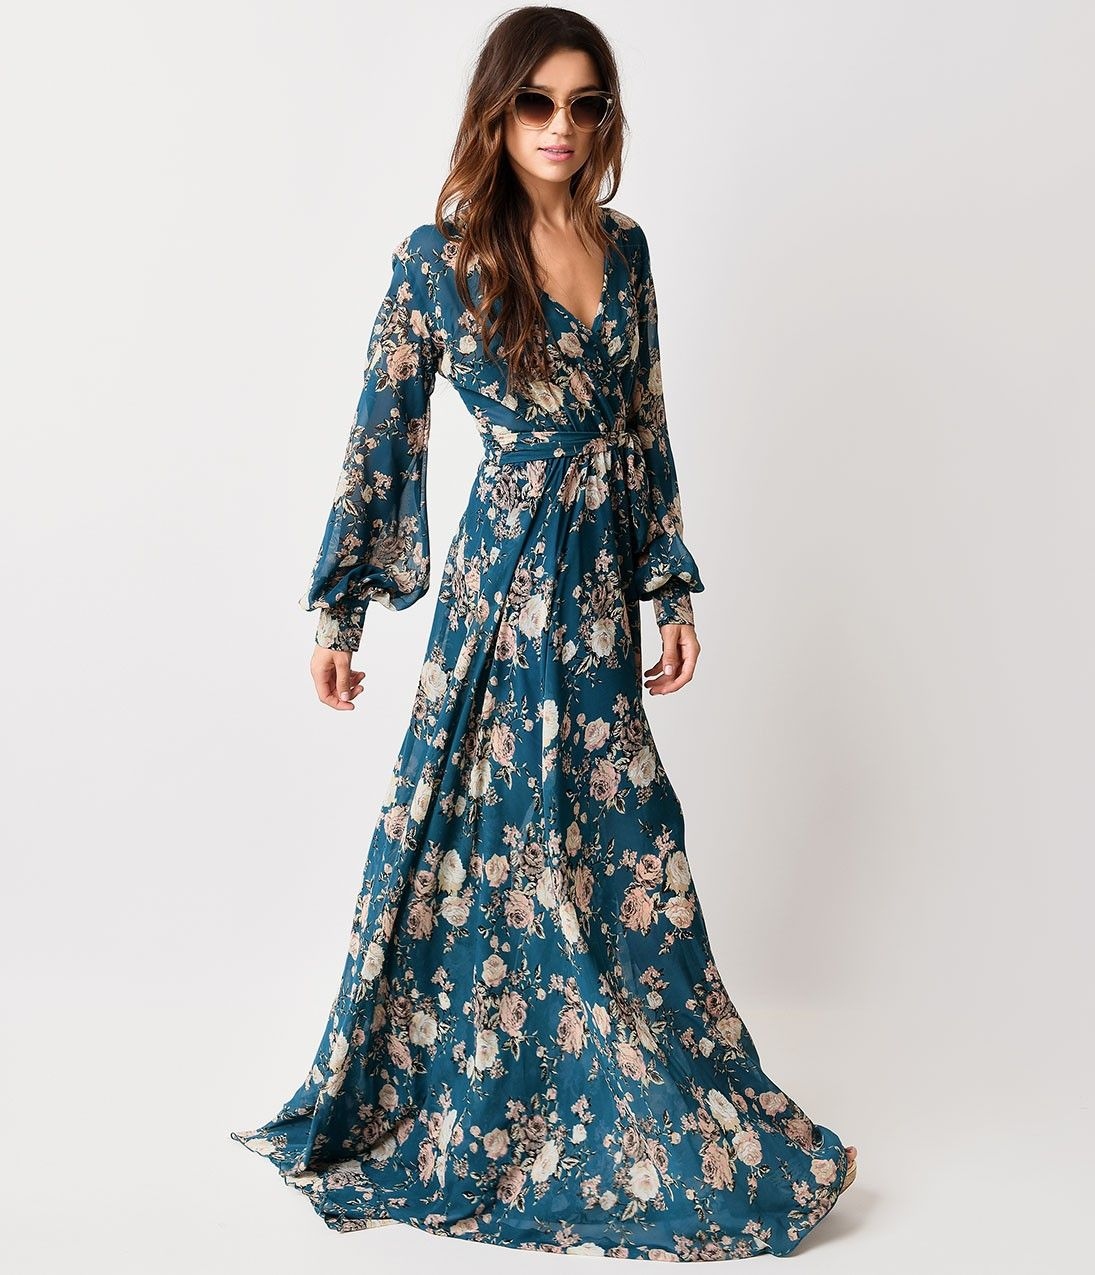 b794e50fec 1970s Style Teal Rose Floral Long Sleeve Maxi Dress | 1970's: That ...